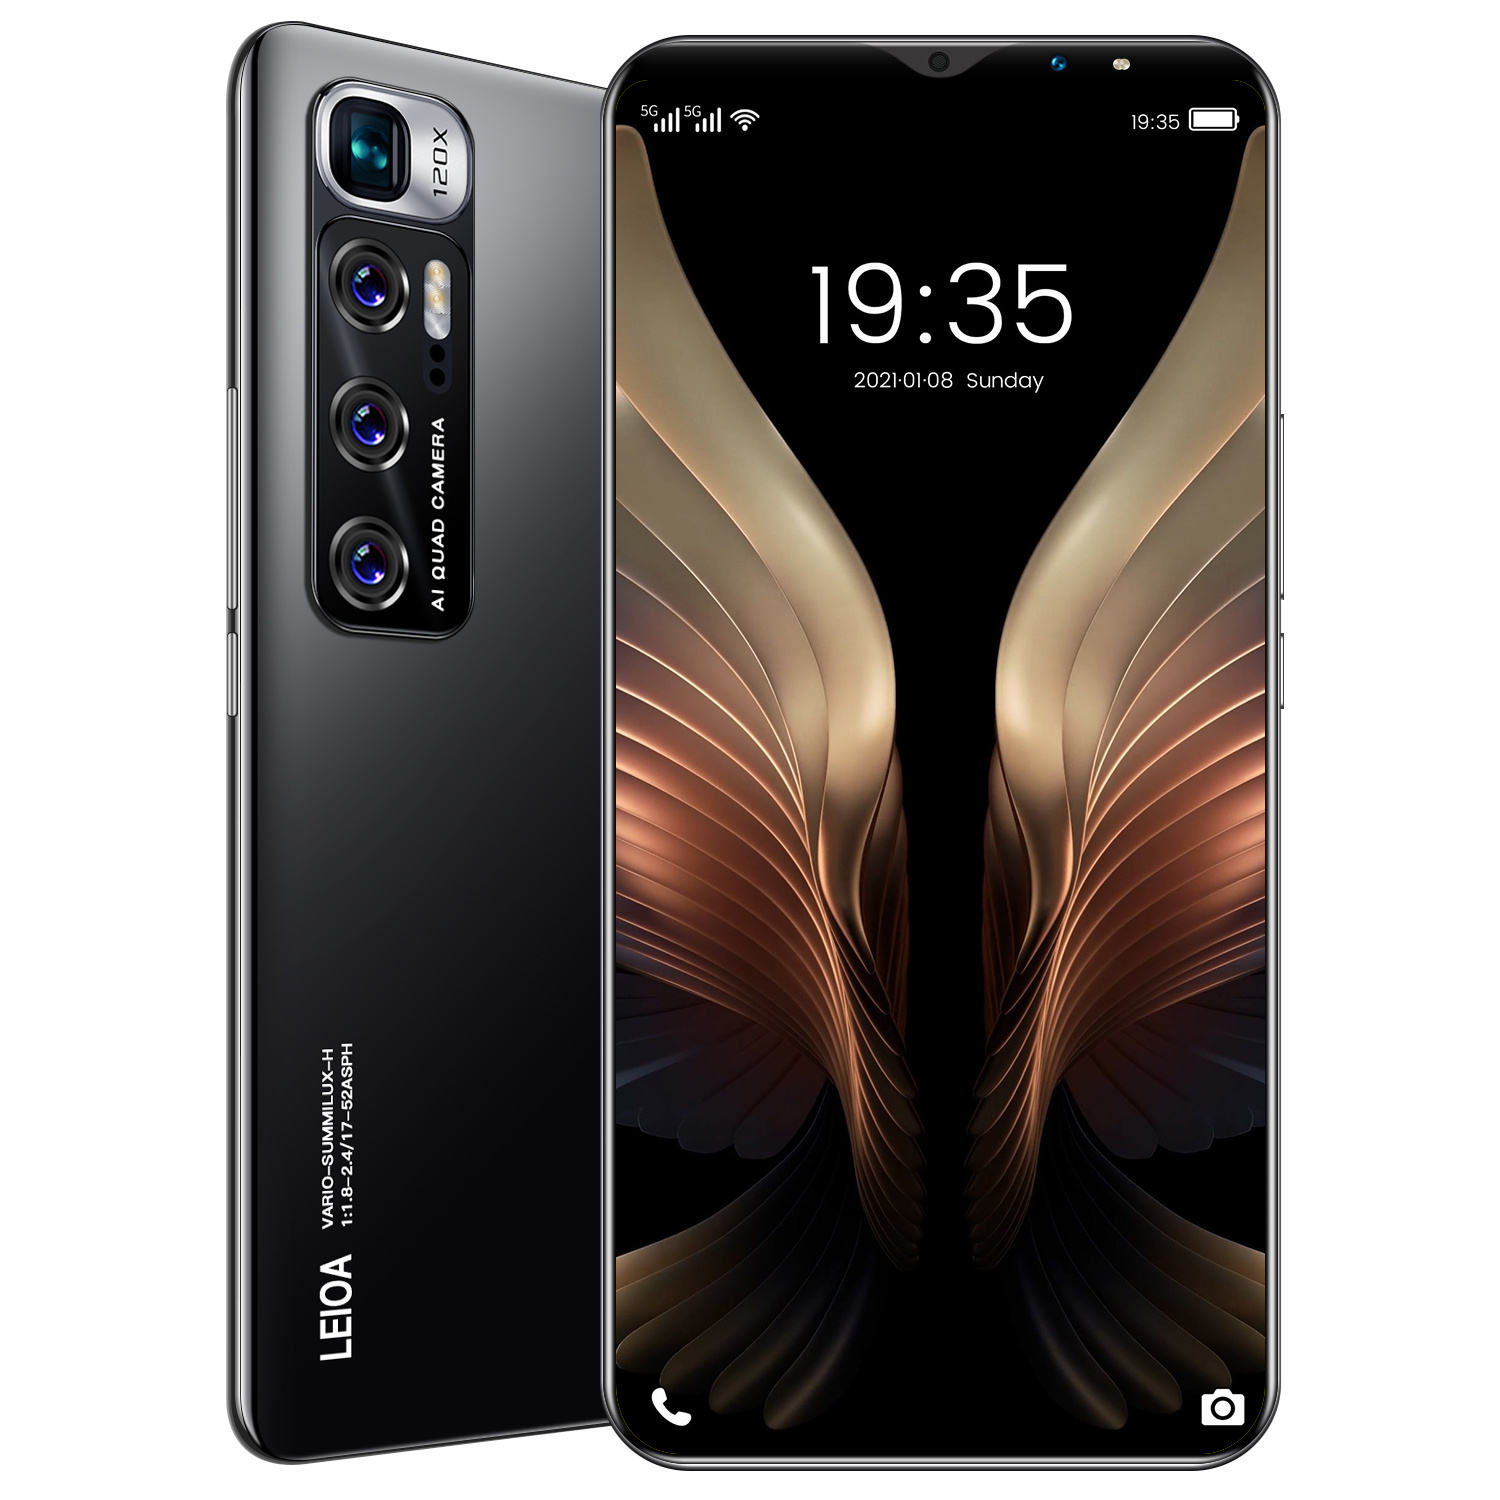 Hot Selling PHONE12 PRO MAX 8GB+256GB 6.7 Inch full Display Android 10.0 Mobile Phone I12 PRO Cell Phone Smartphone